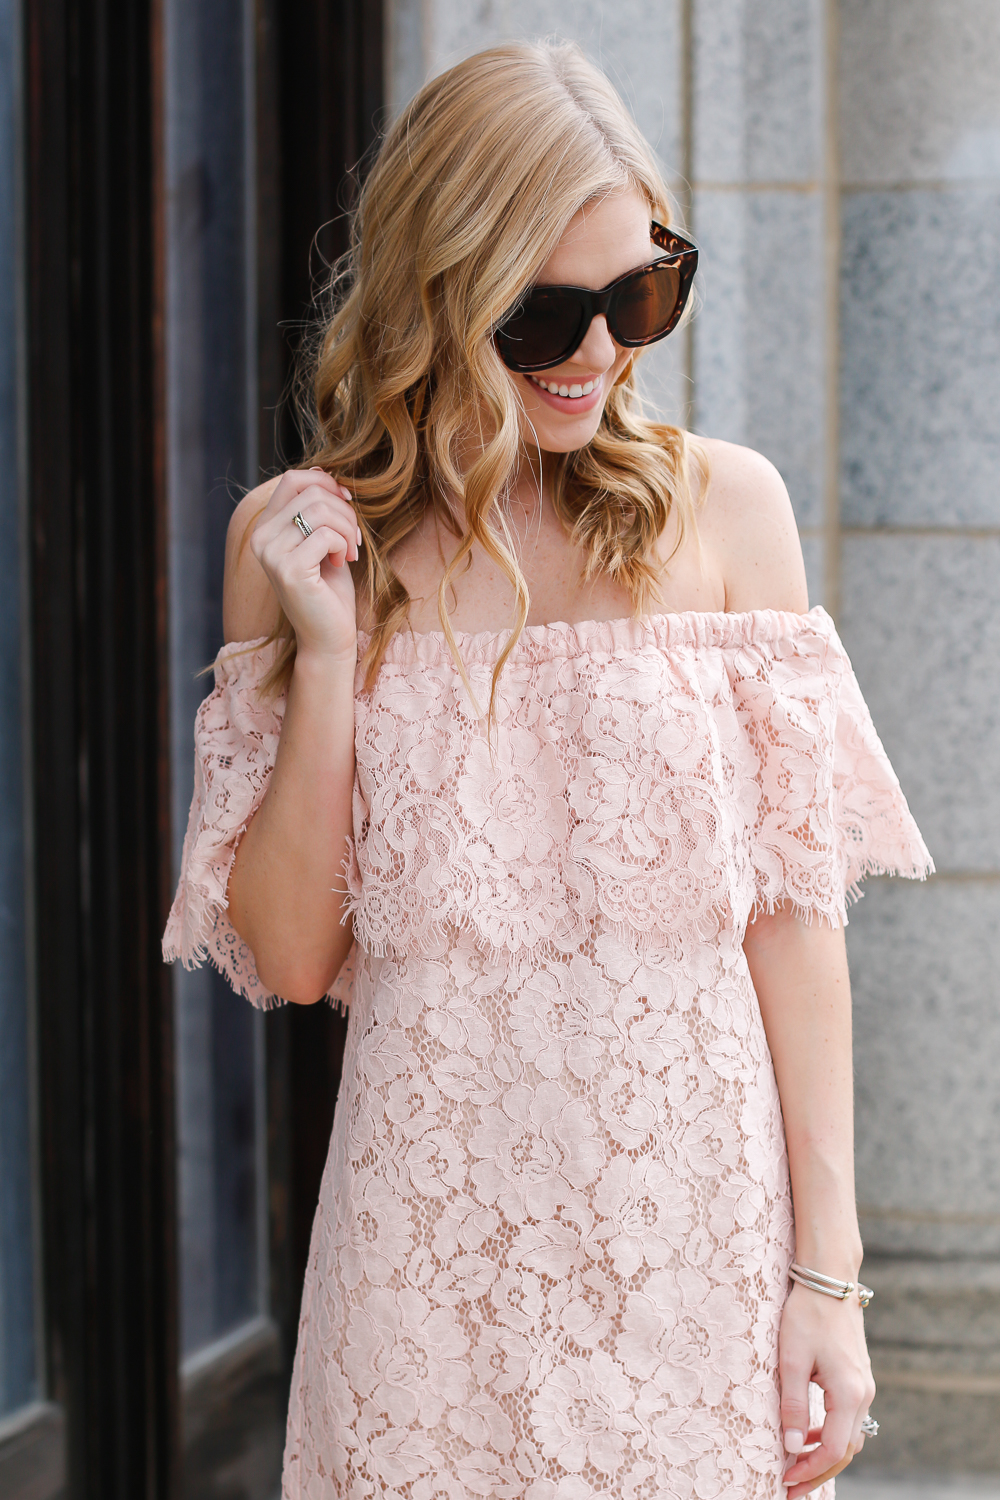 off the shoulder Dress for spring